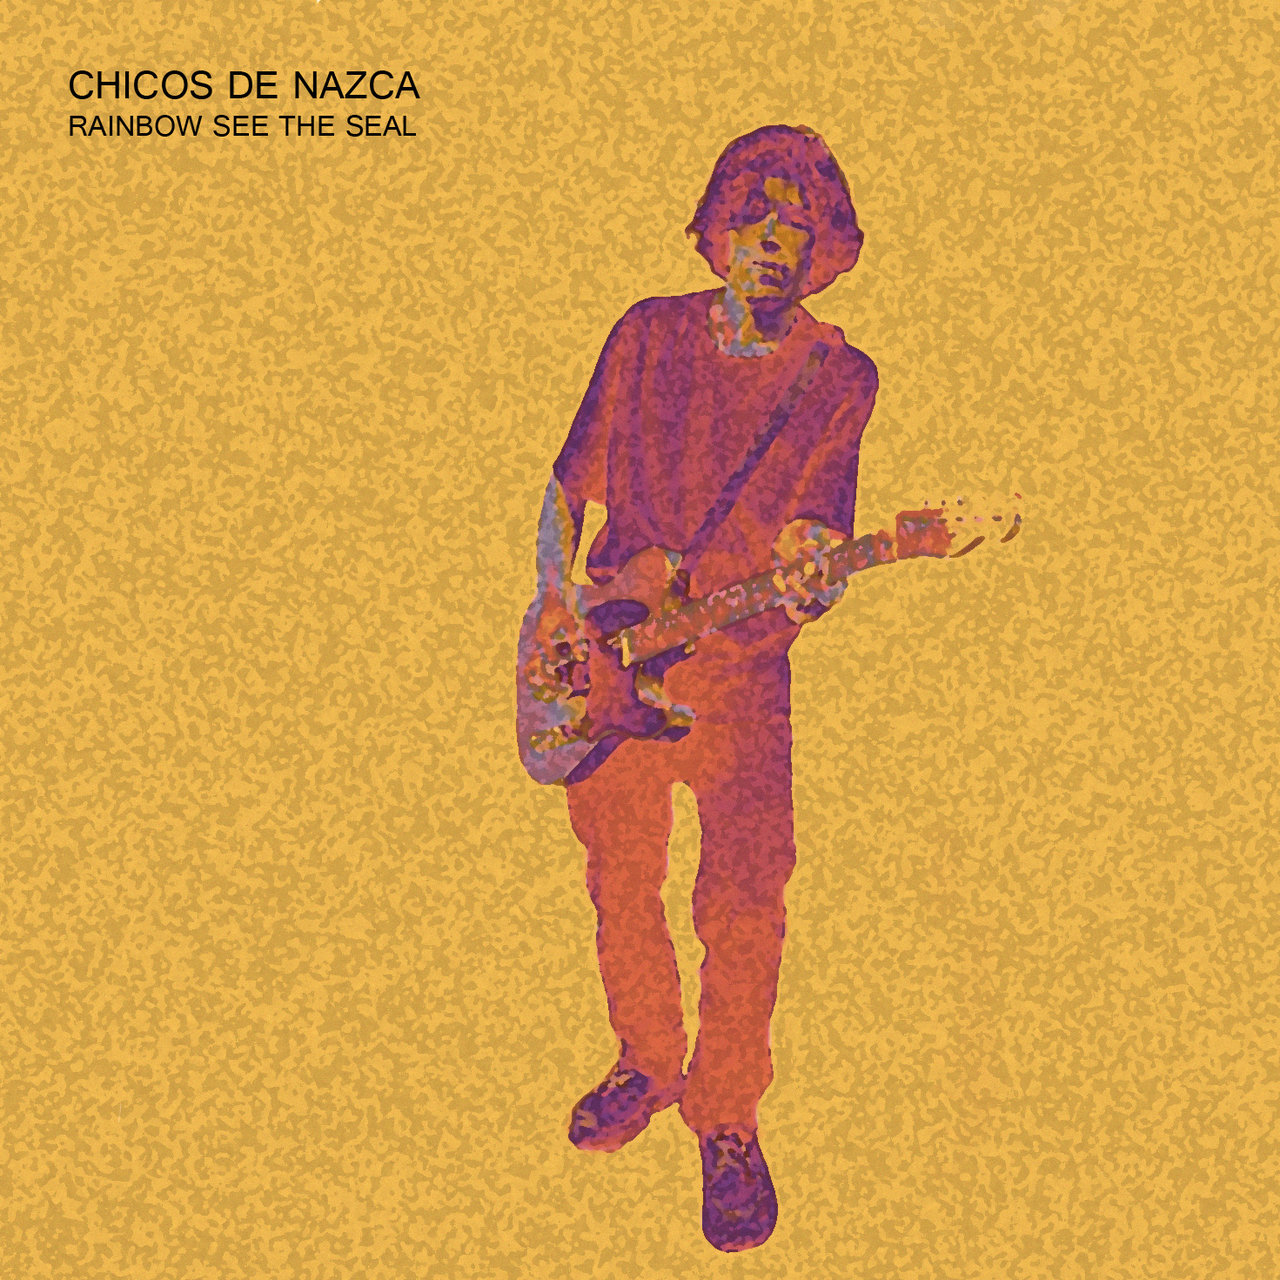 Chicos de nazca rainbow see the seal portada